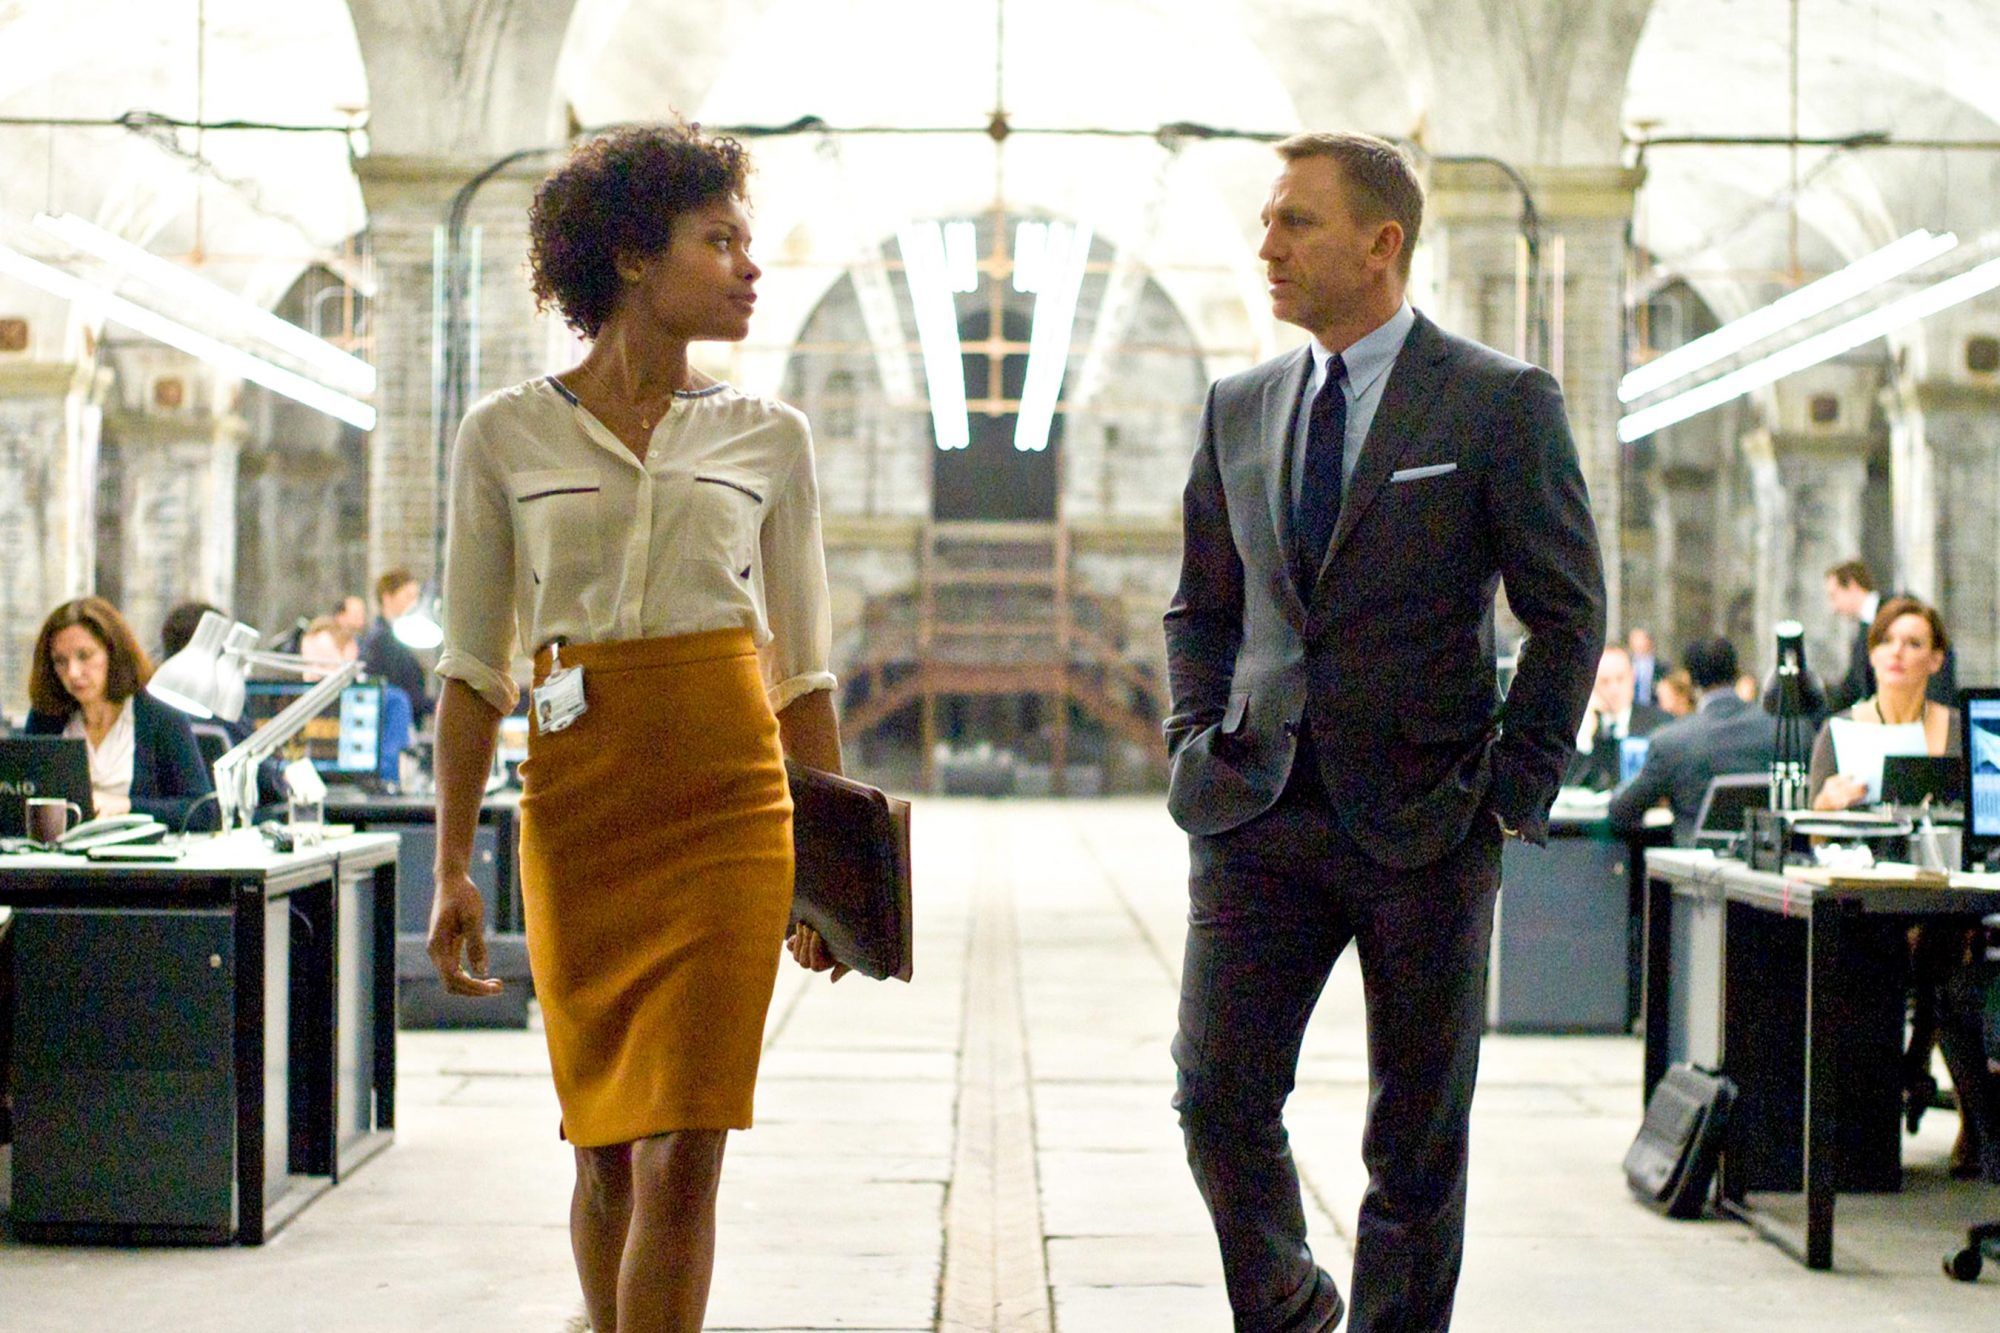 SKYFALL, from left: Naomie Harris, Daniel Craig as James Bond, 2012. ph: Francois Duhamel/©Columbia Pictures/courtesy Everett Collection